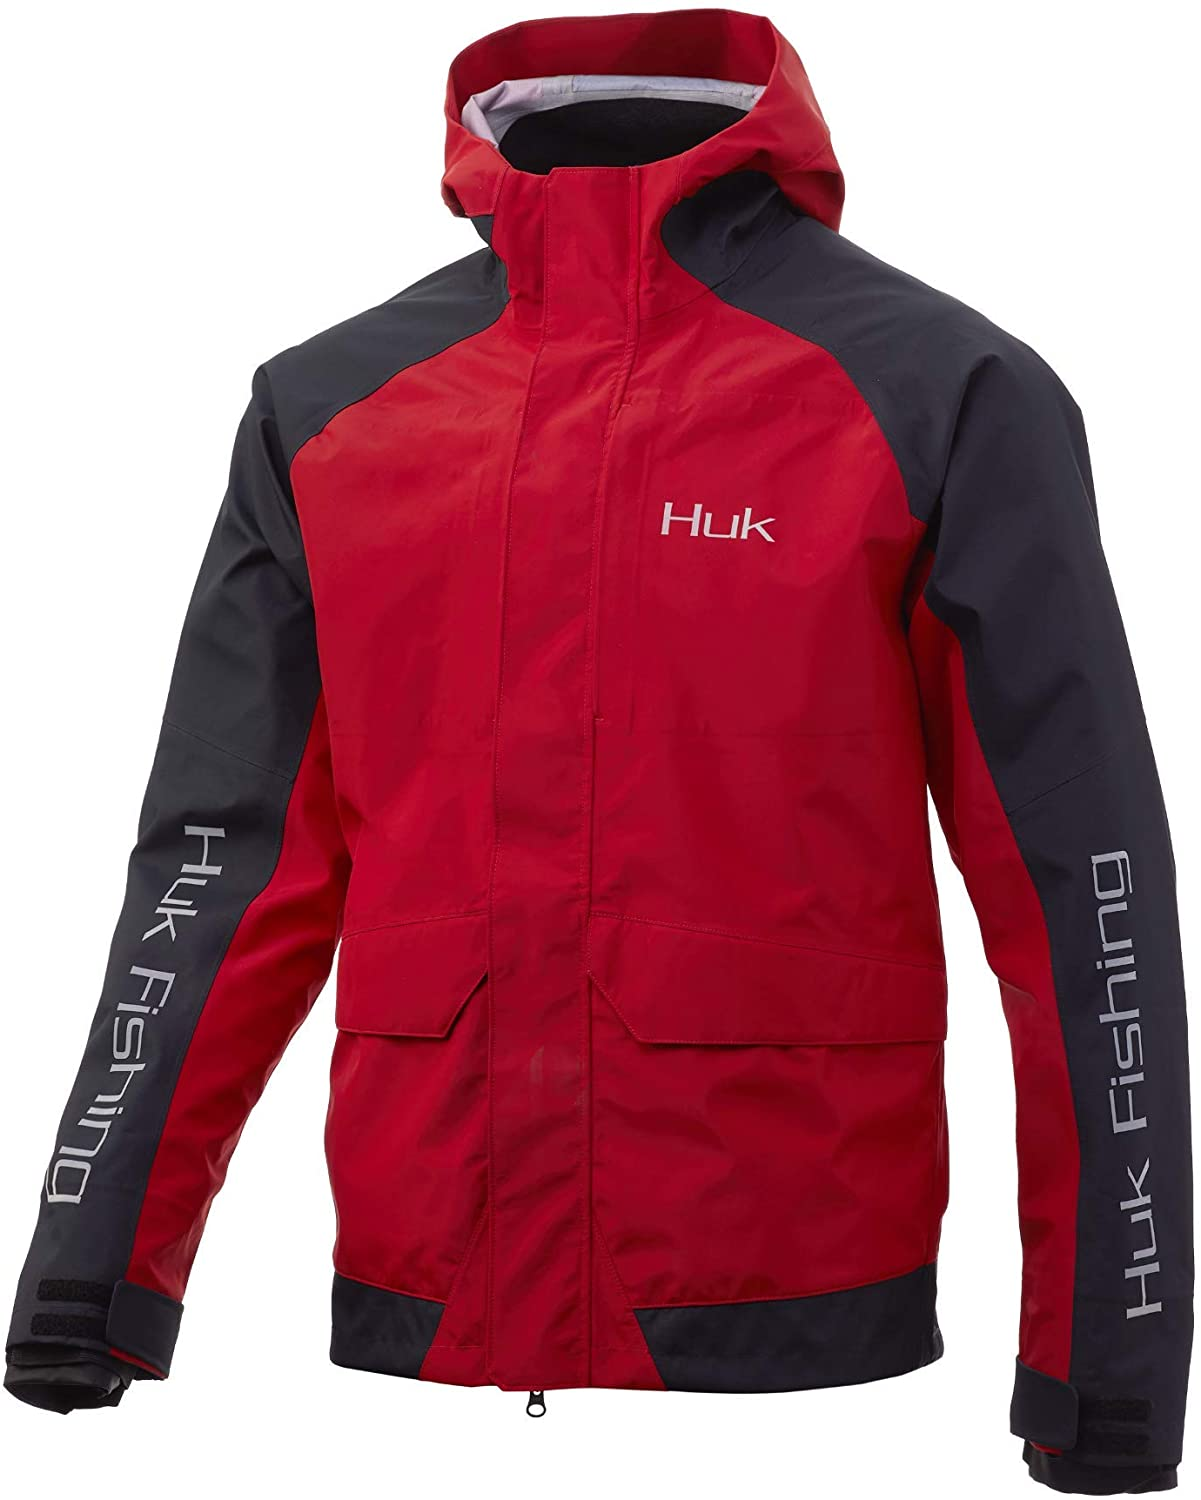 HUK mens Tournament Jacket | Wind Proof & Water Proof Rain Jacket - 20k/15k Wind & Water Proof Rating